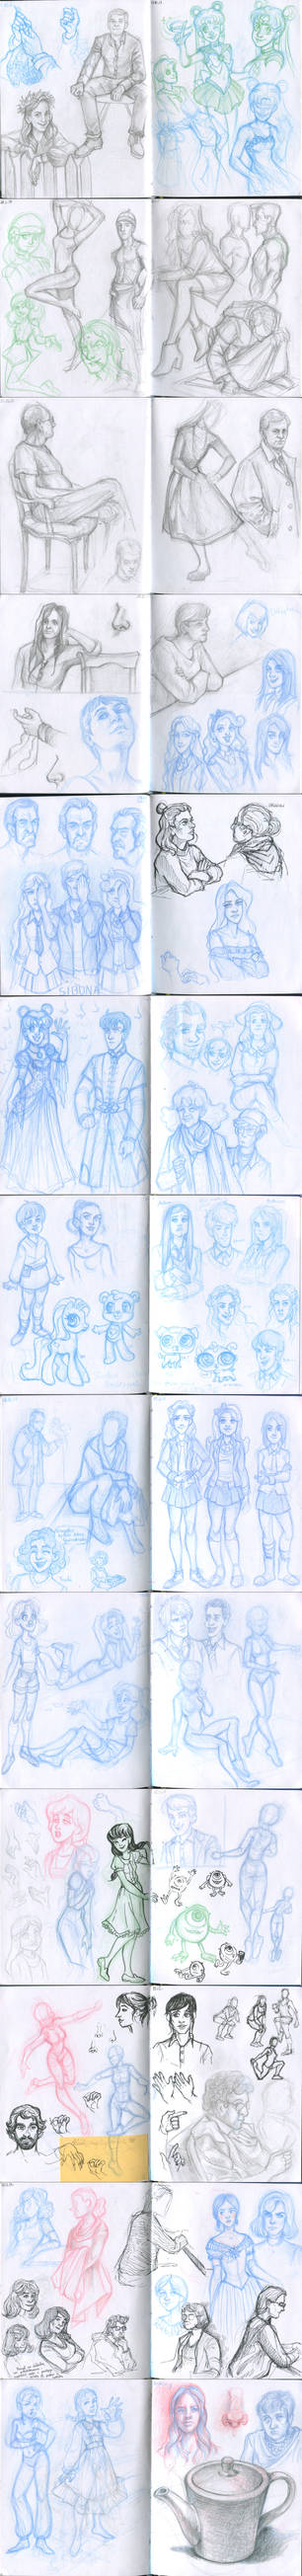 My sketchbook 40